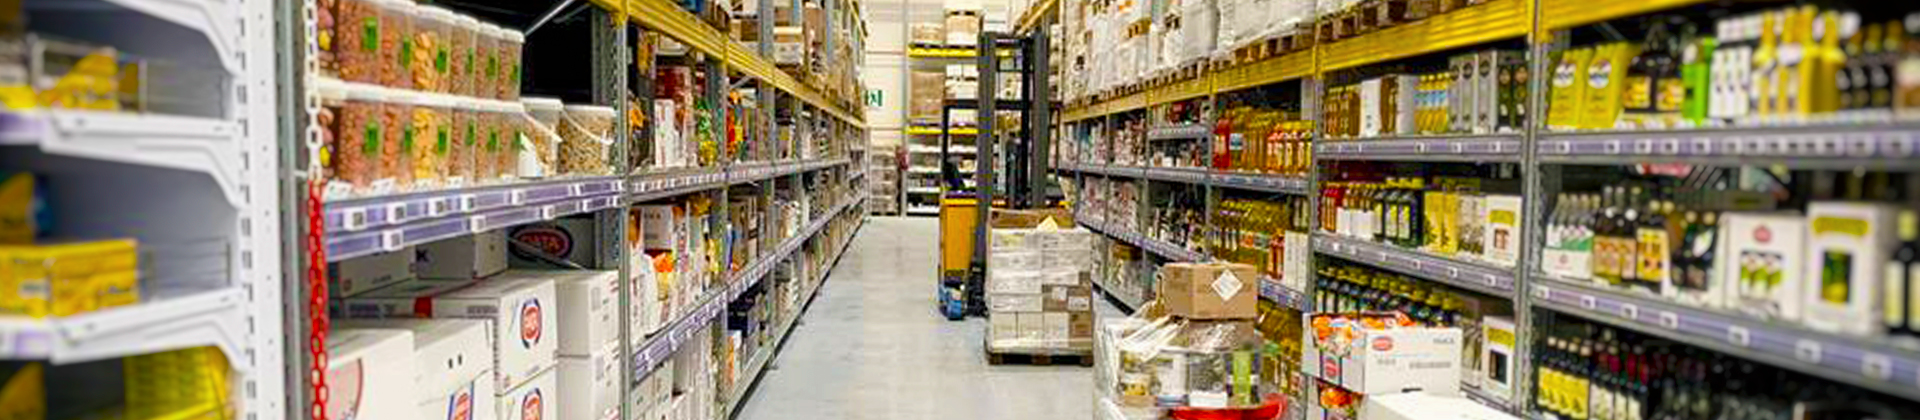 gallery logistica_05